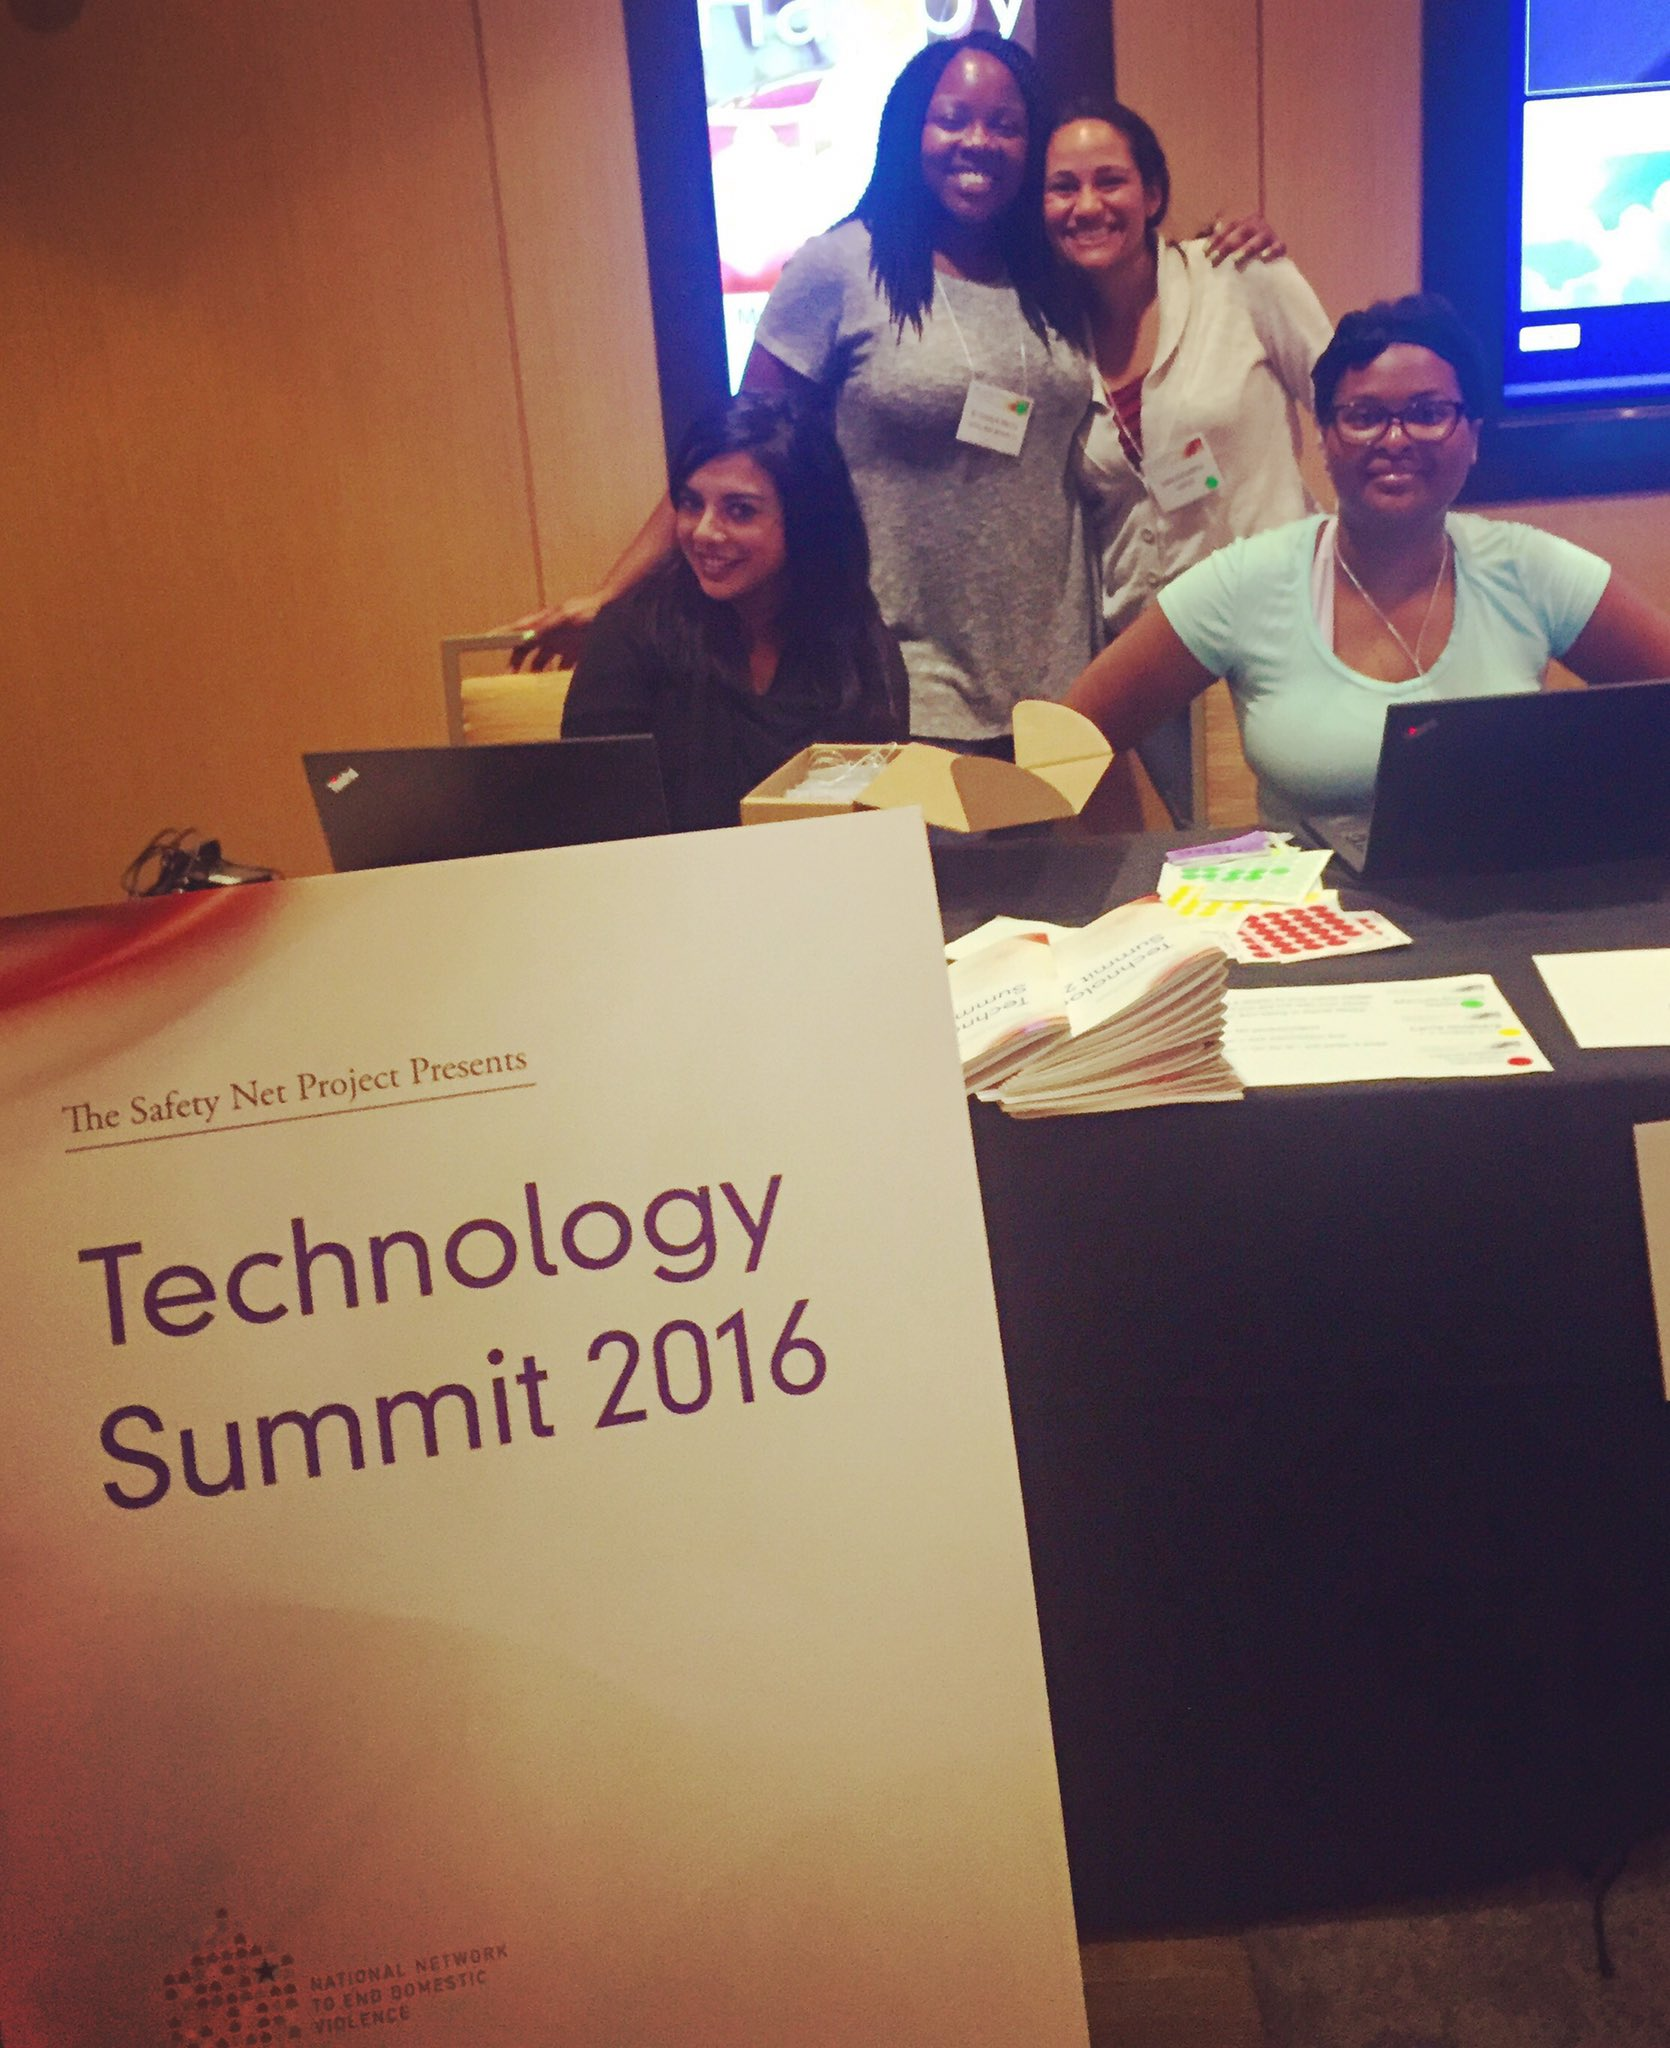 #Techsummit16 is NOW! 🎉 Follow along using #techsummit16 to learn more about #techsafety. 💻 https://t.co/g2QM6EYpIn